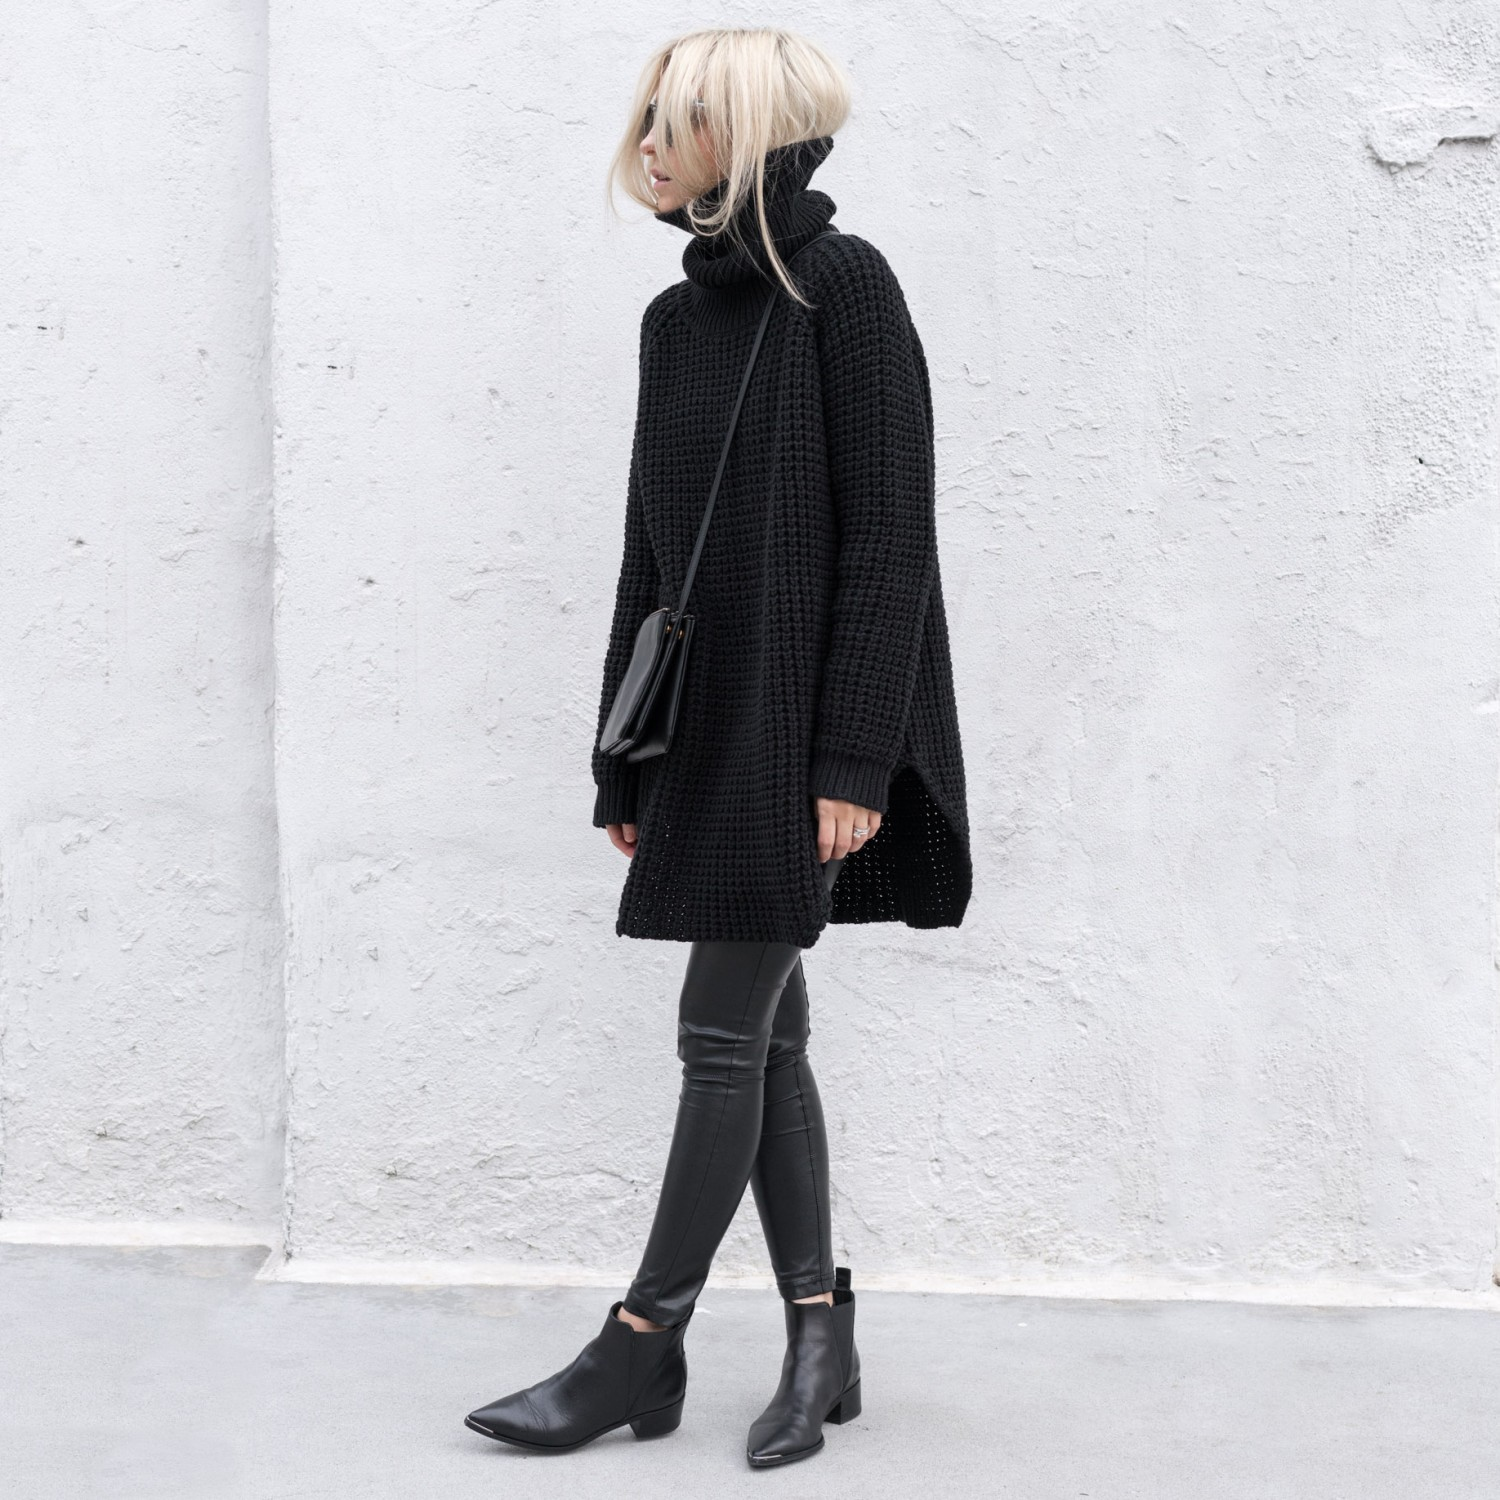 figtny.com | All Black Everything